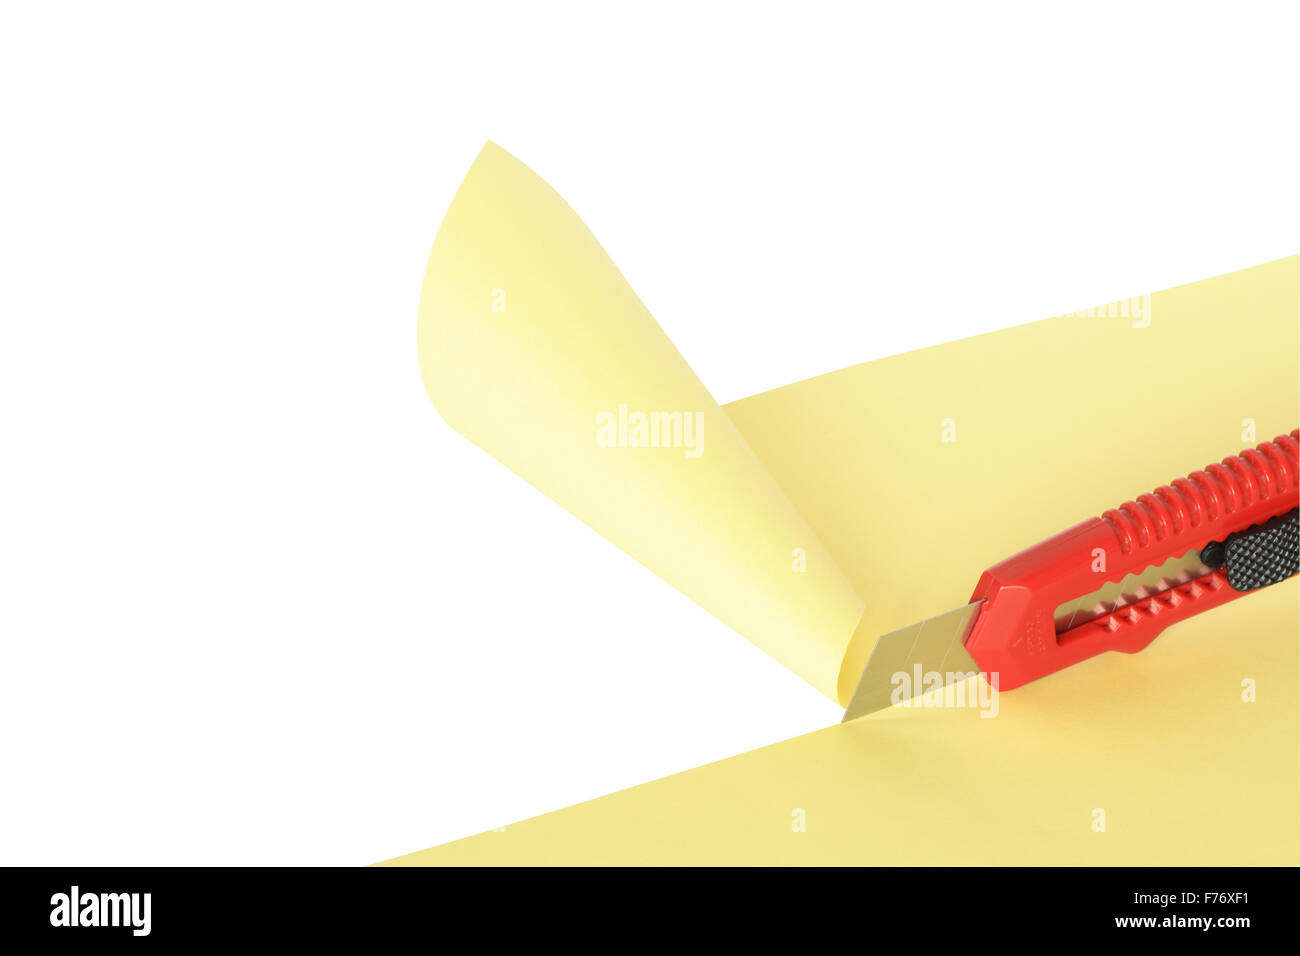 Knife Cutting Paper Stock Photo